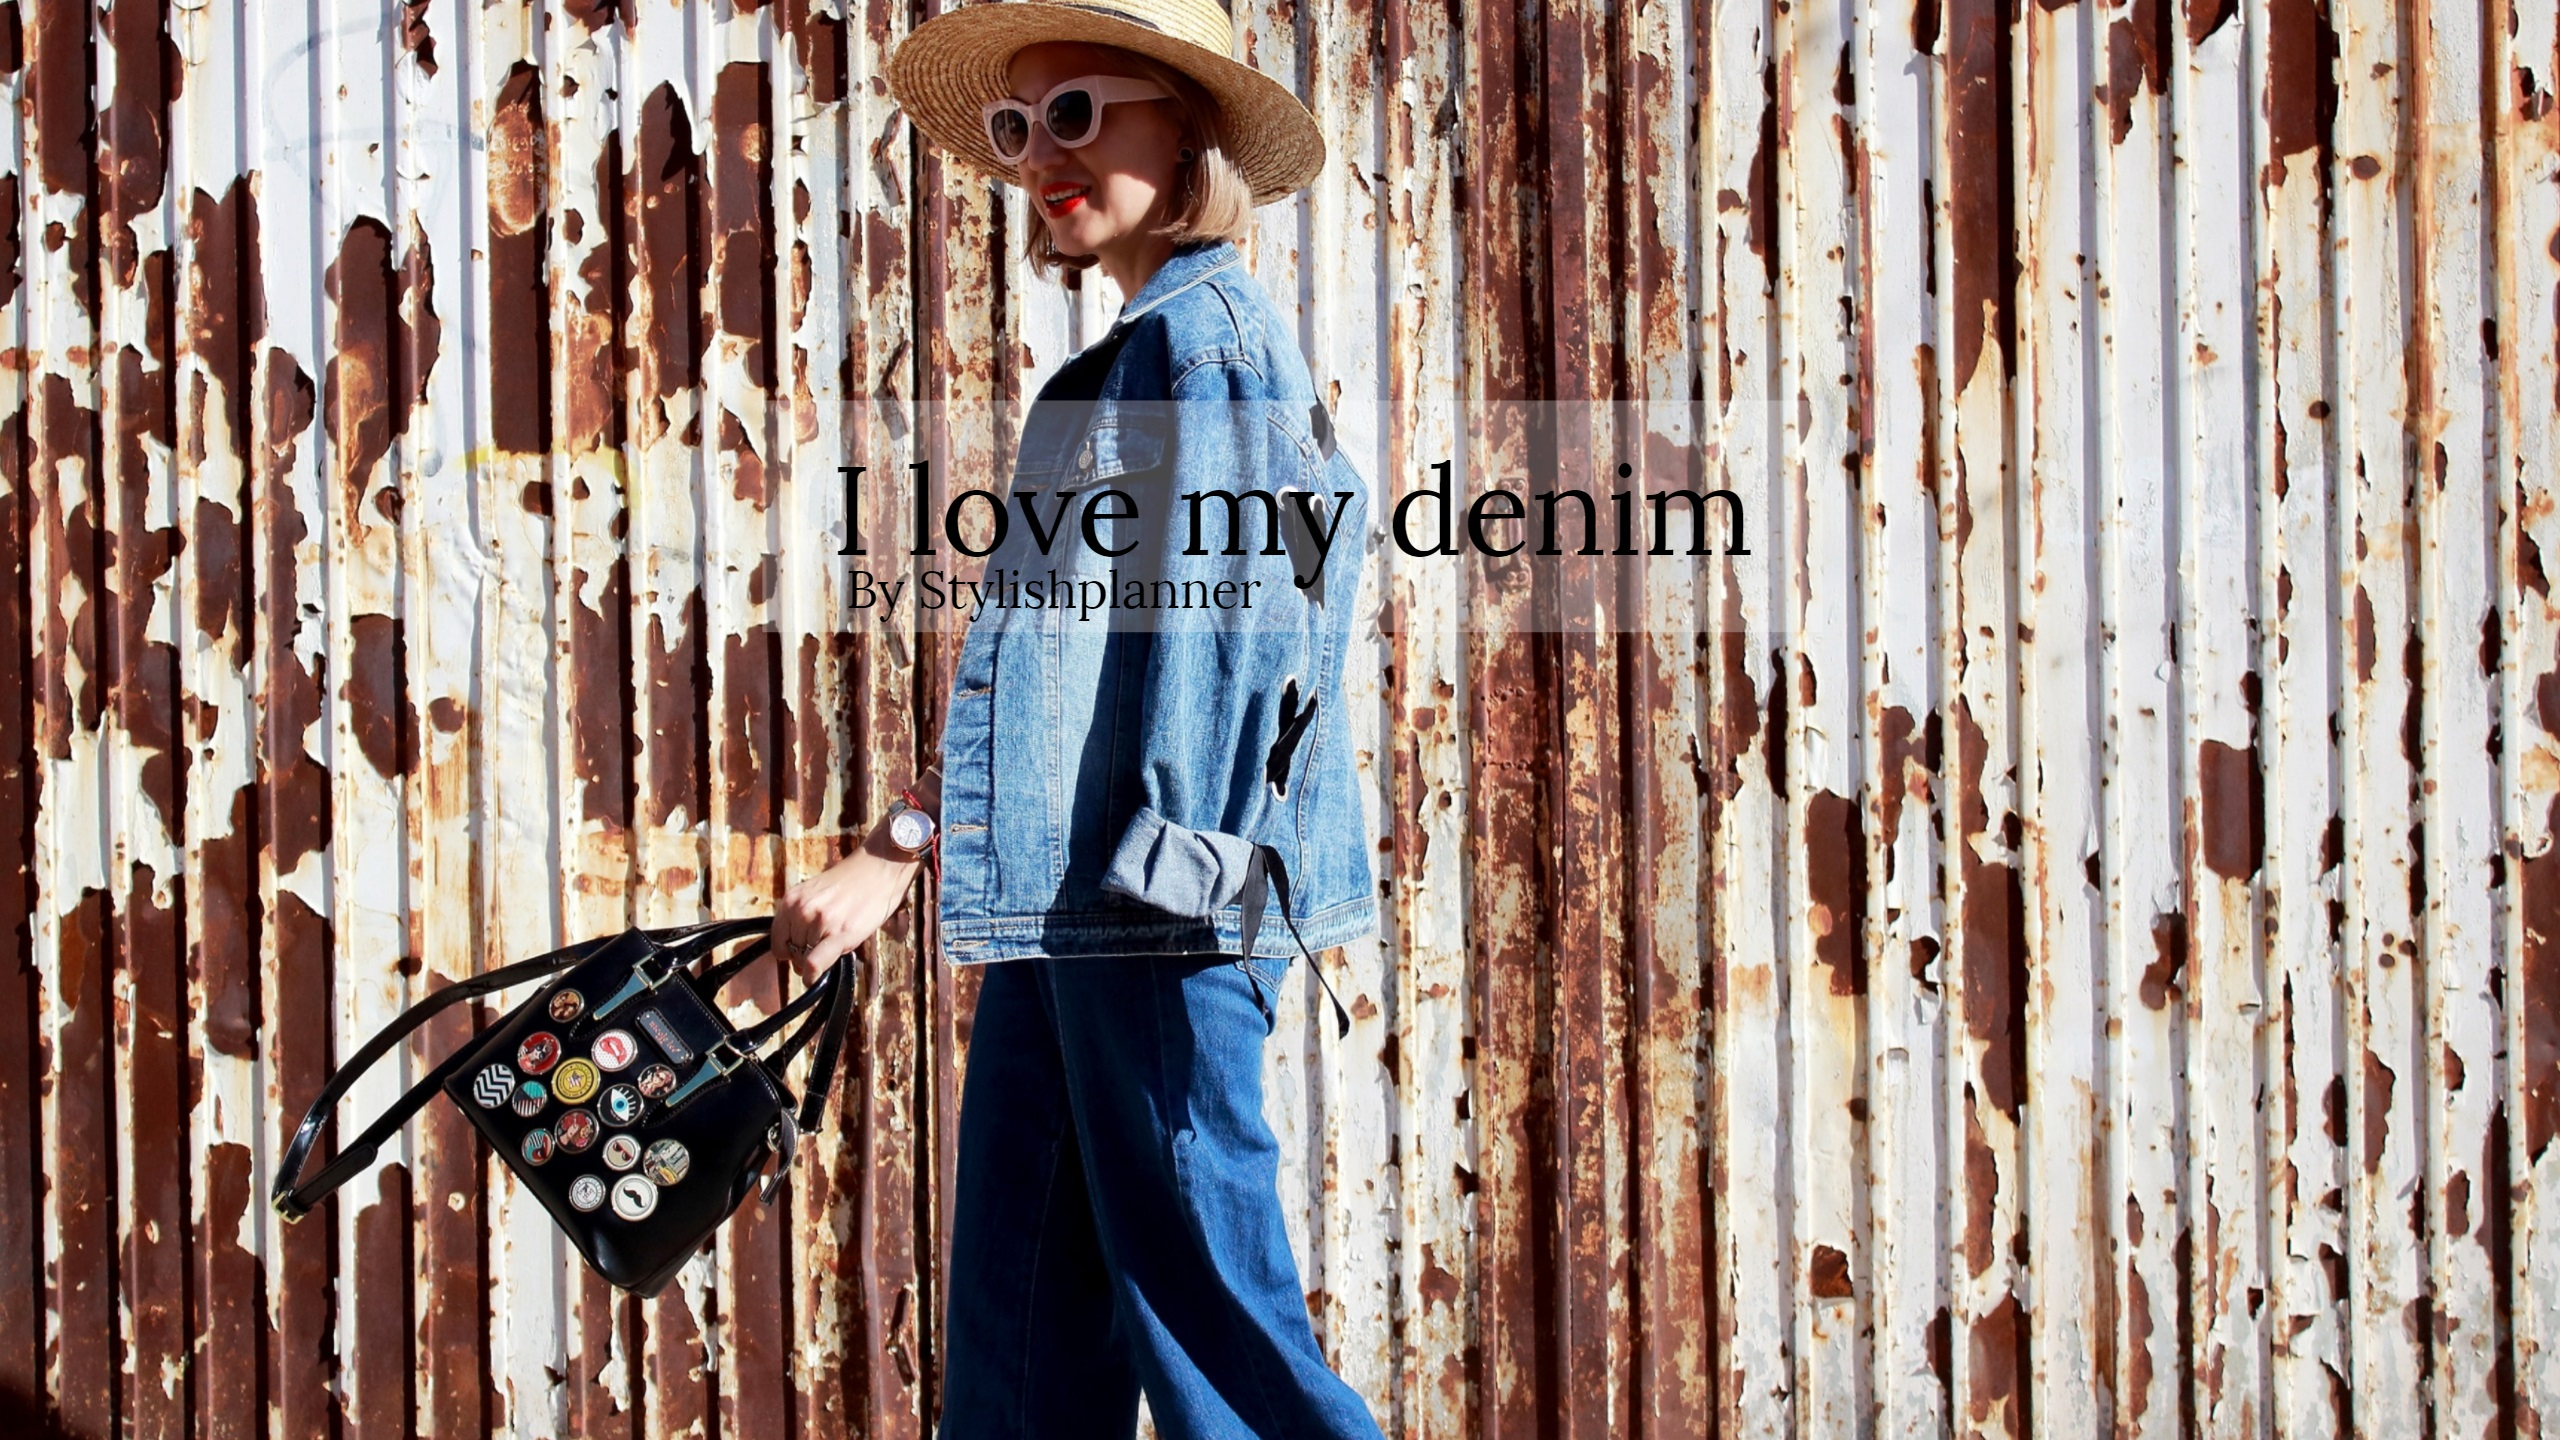 I love my denim